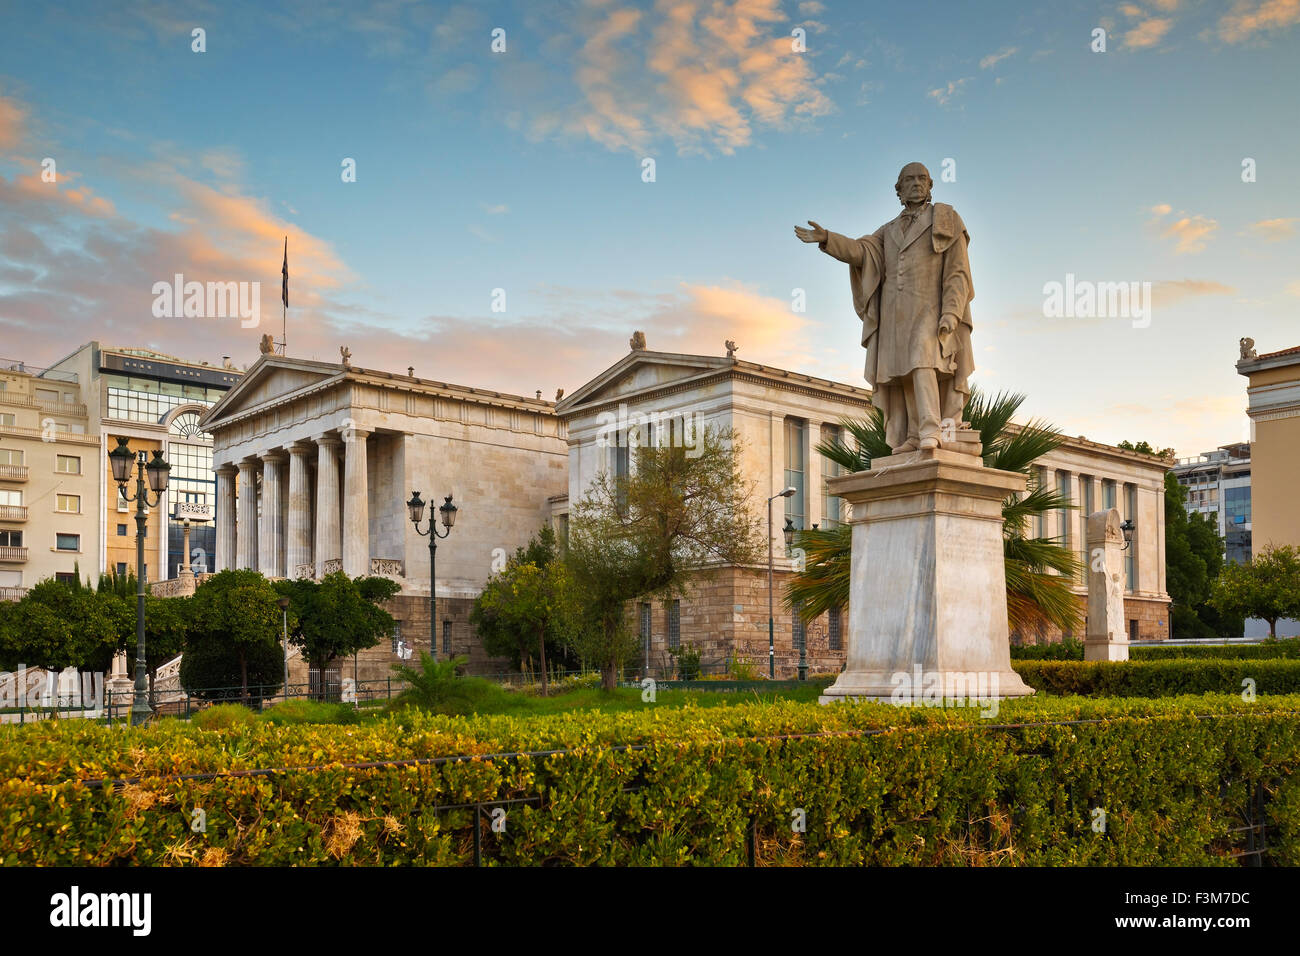 Statue at the National Library of Greece in Panepistimio, Athens - Stock Image